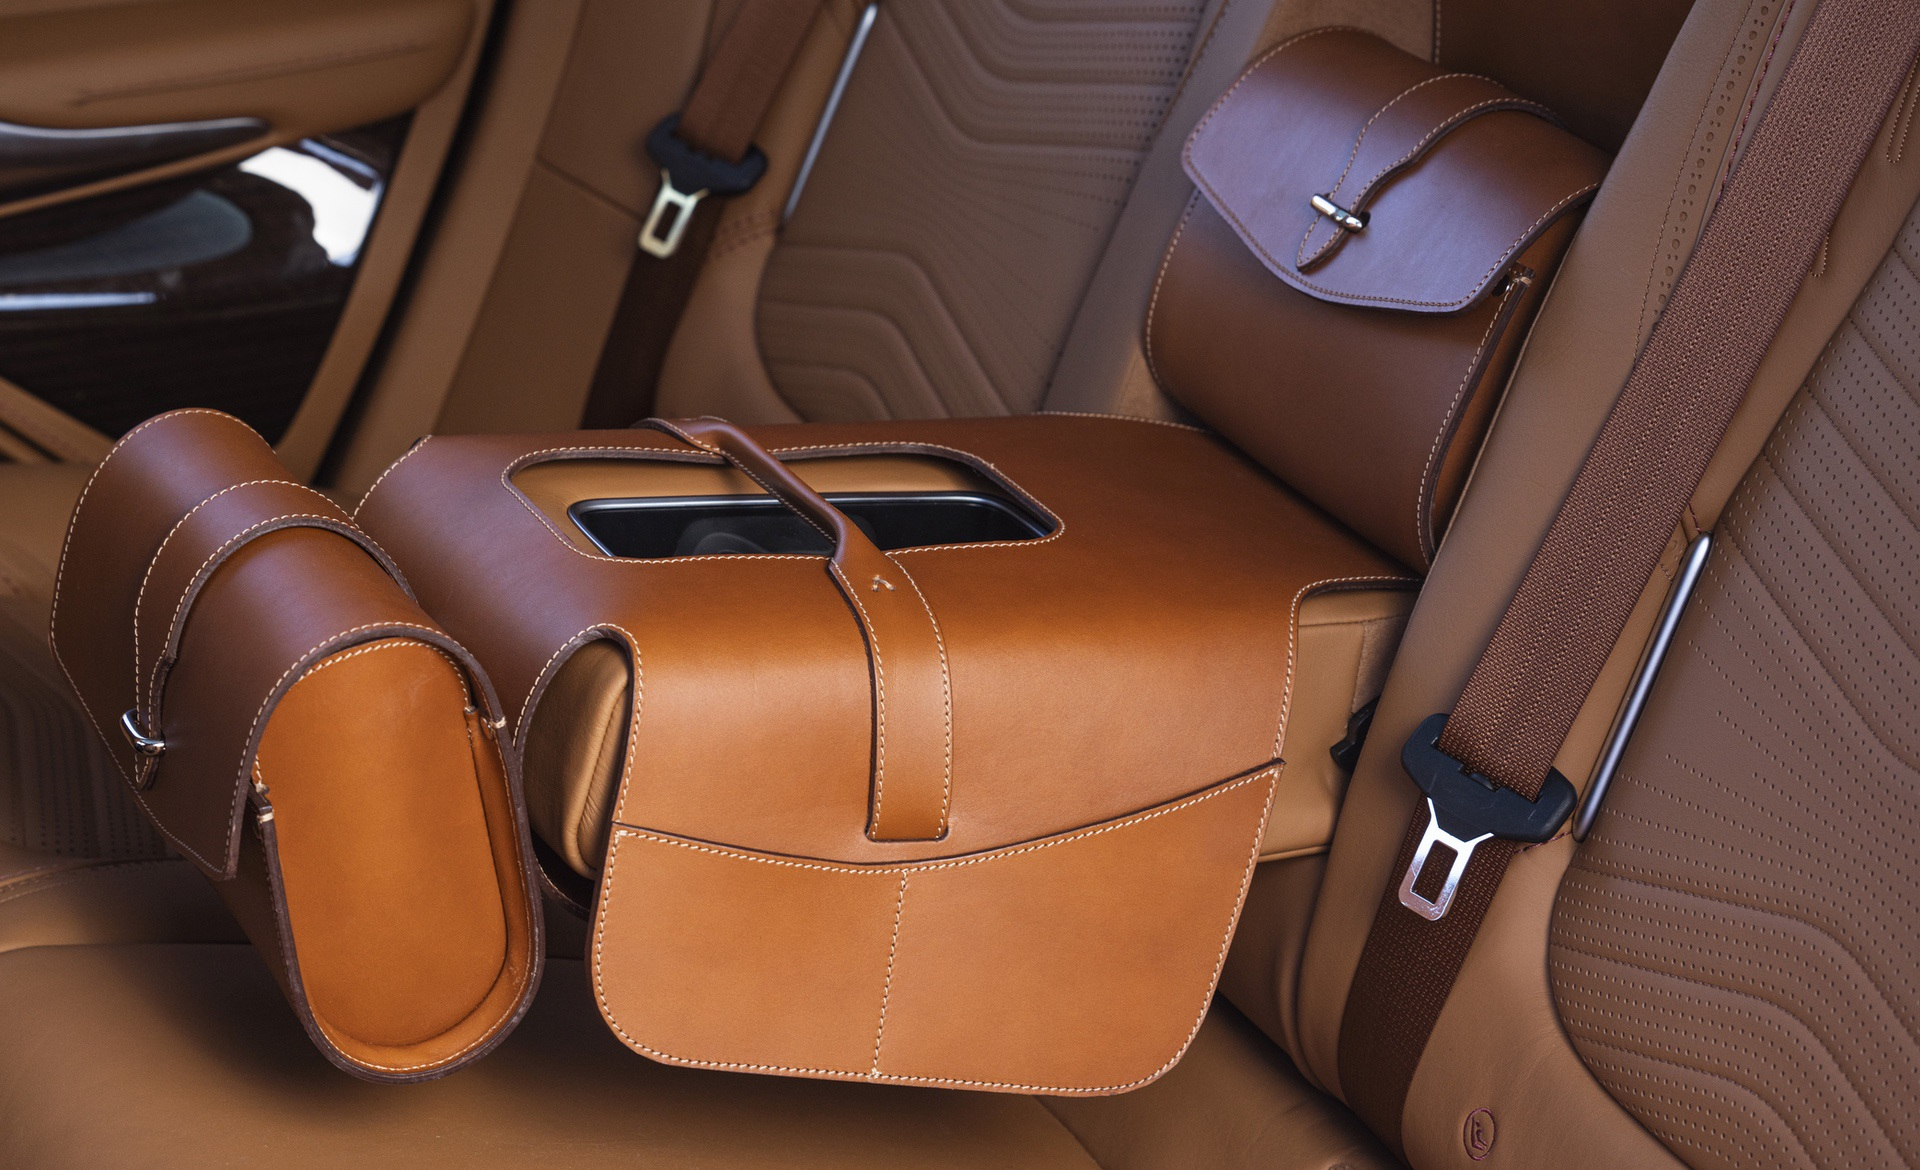 Aston-Martin-DBX-Saddle-Bag